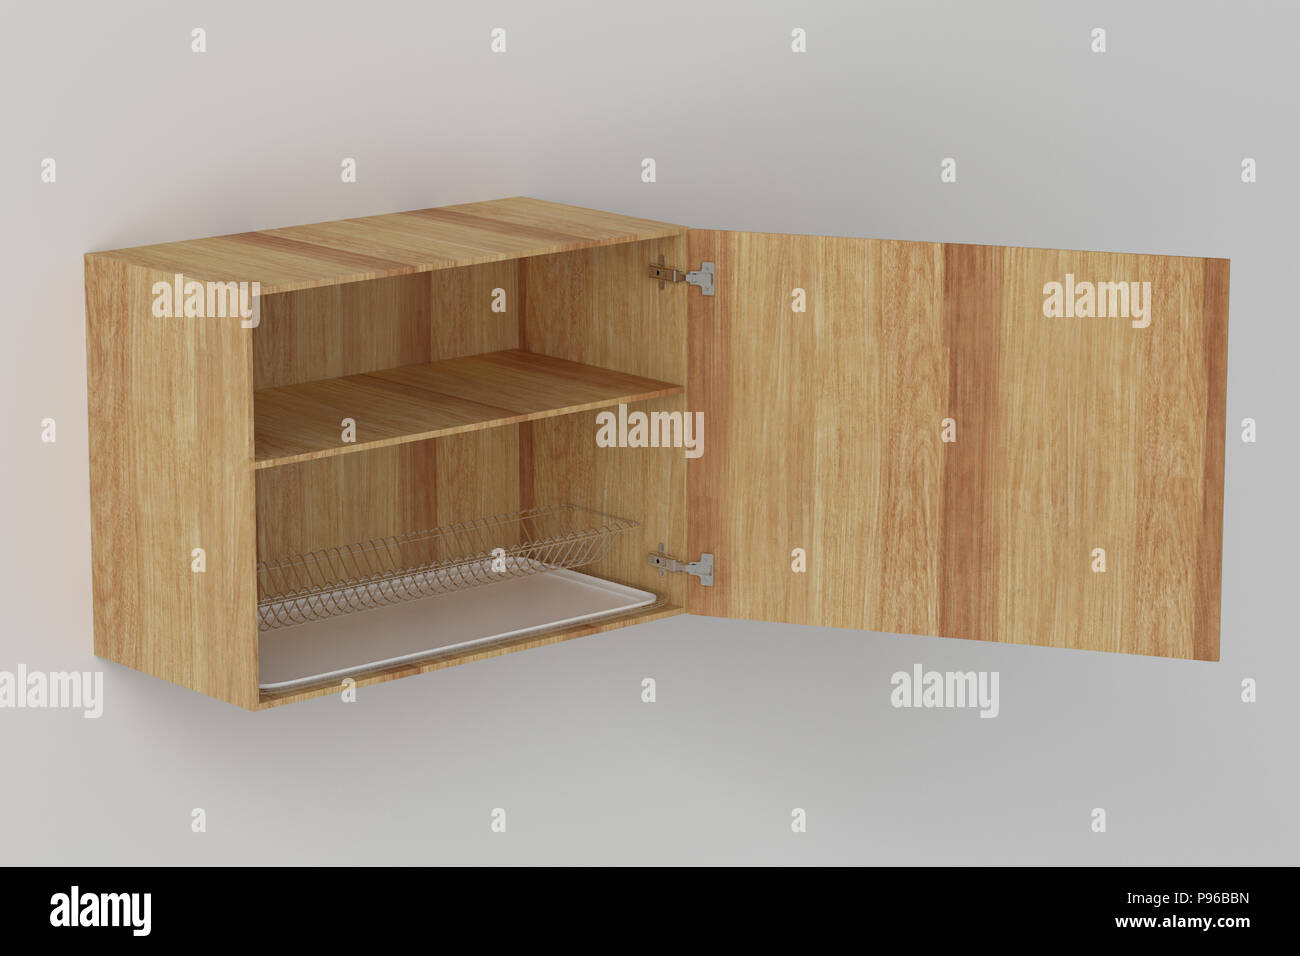 Wooden Kitchen Wall Cabinet With Dish Drainer Isolated On White